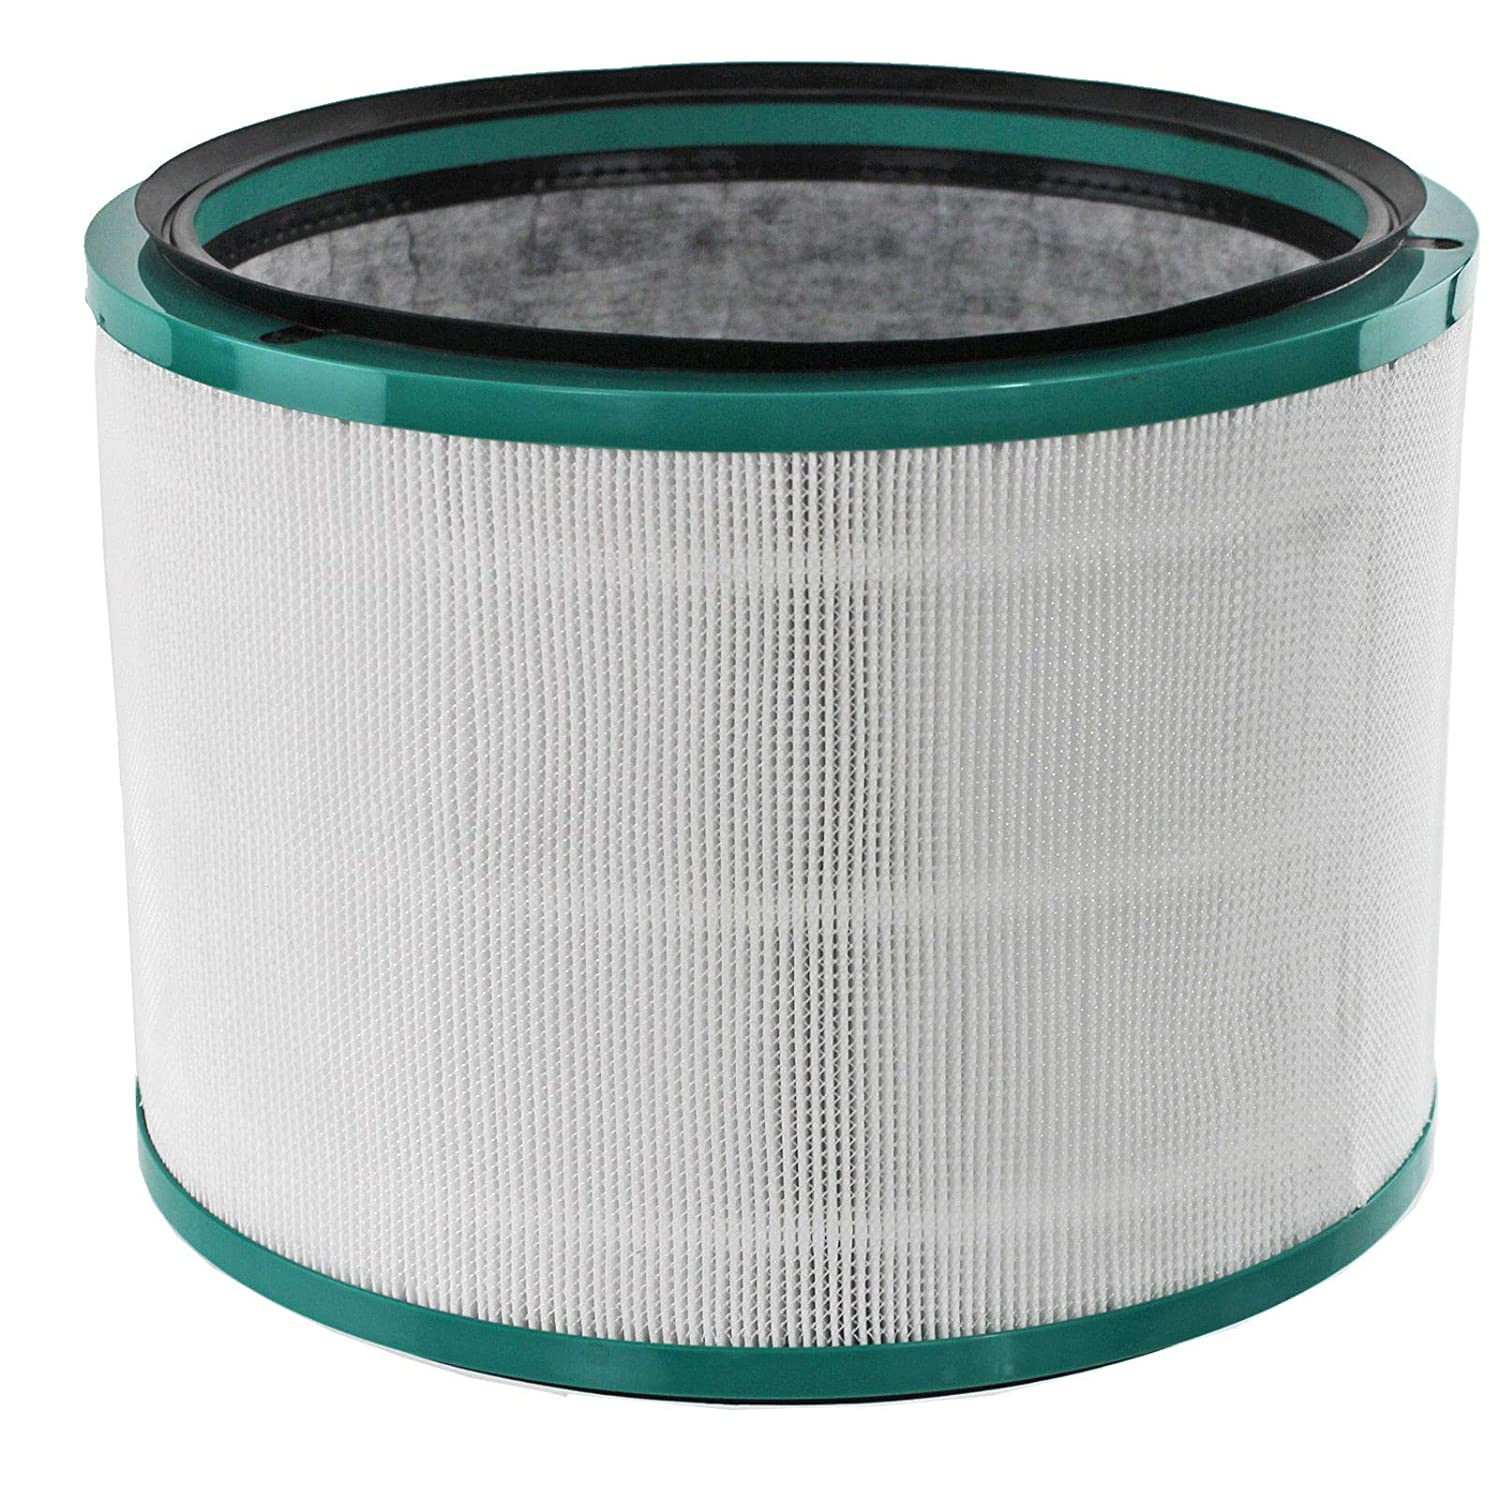 Dyson Purifier Replacement Filter Pure Cool Link Desk & Dyson Pure Hot+Cool Link purifiers